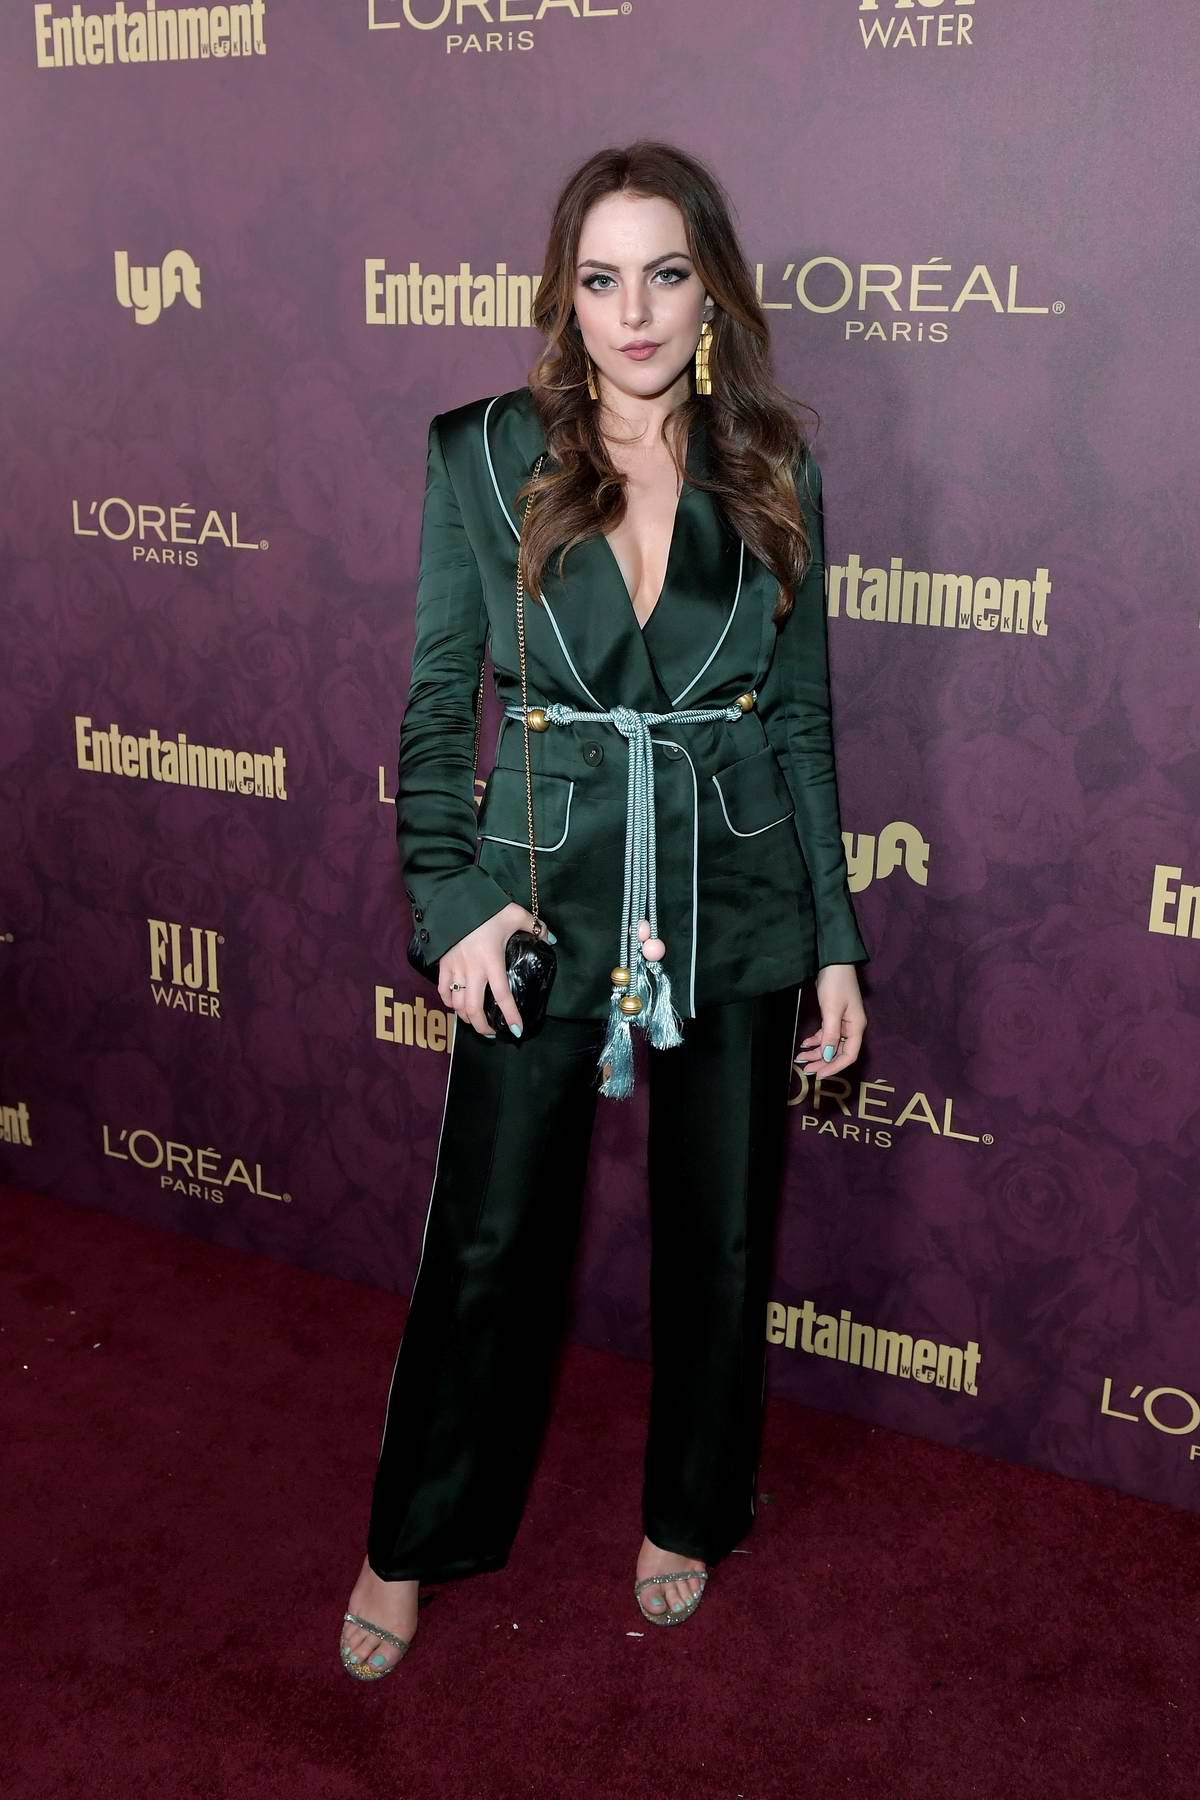 Elizabeth Gillies attends Entertainment Weekly and L'Oreal Paris Pre-Emmy party in Los Angeles